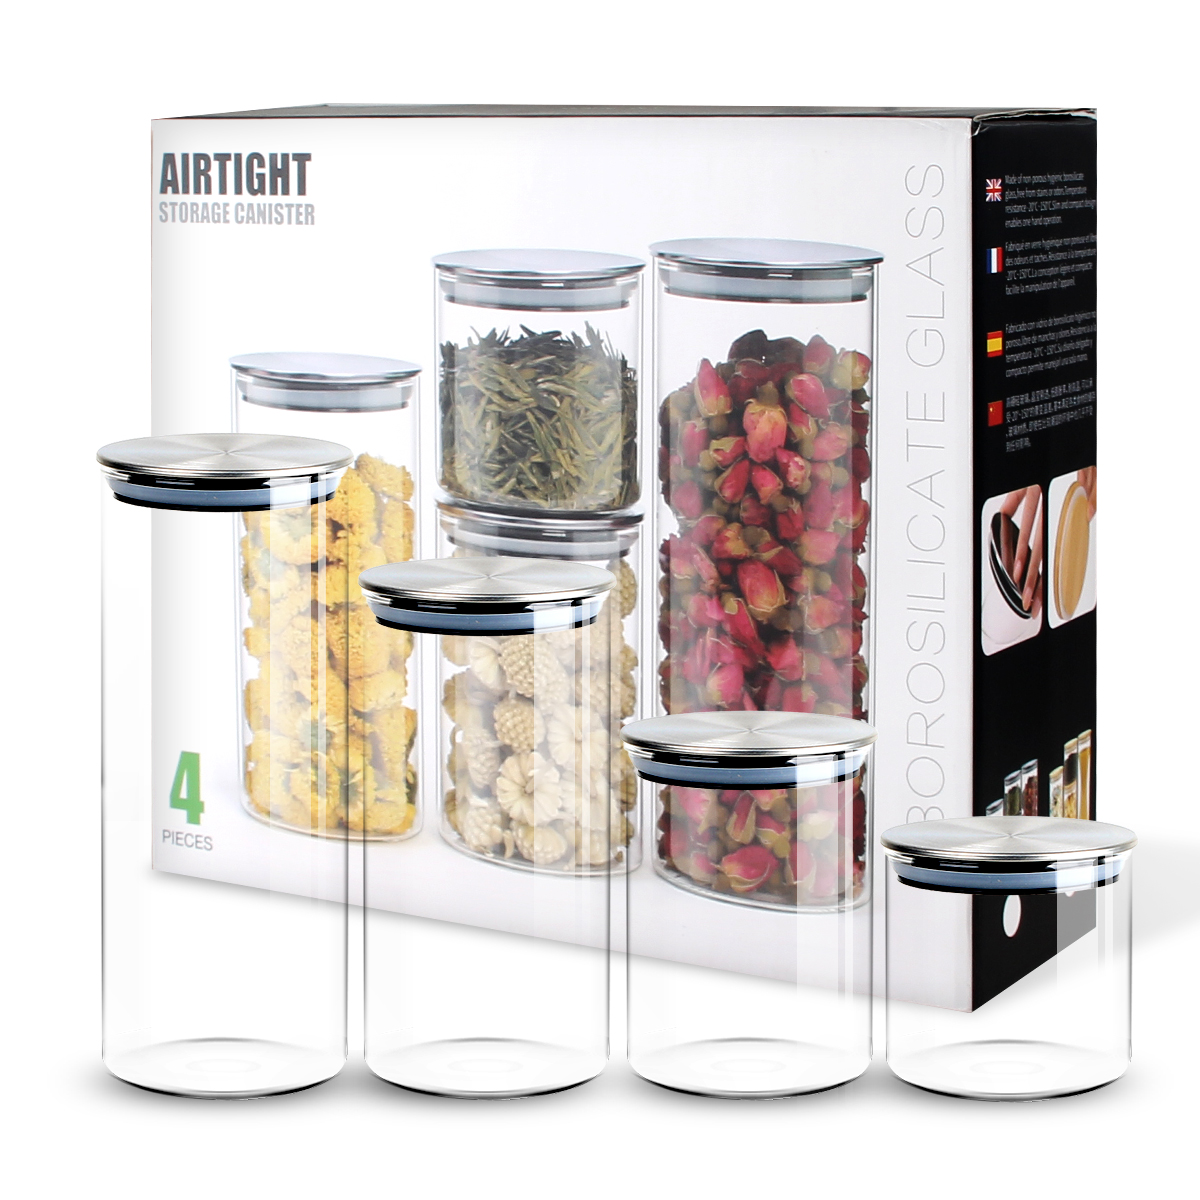 Details about Airtight 4 Pcs Food Storage Containers Kitchen Glass Cereal  Jars with Metal Lids